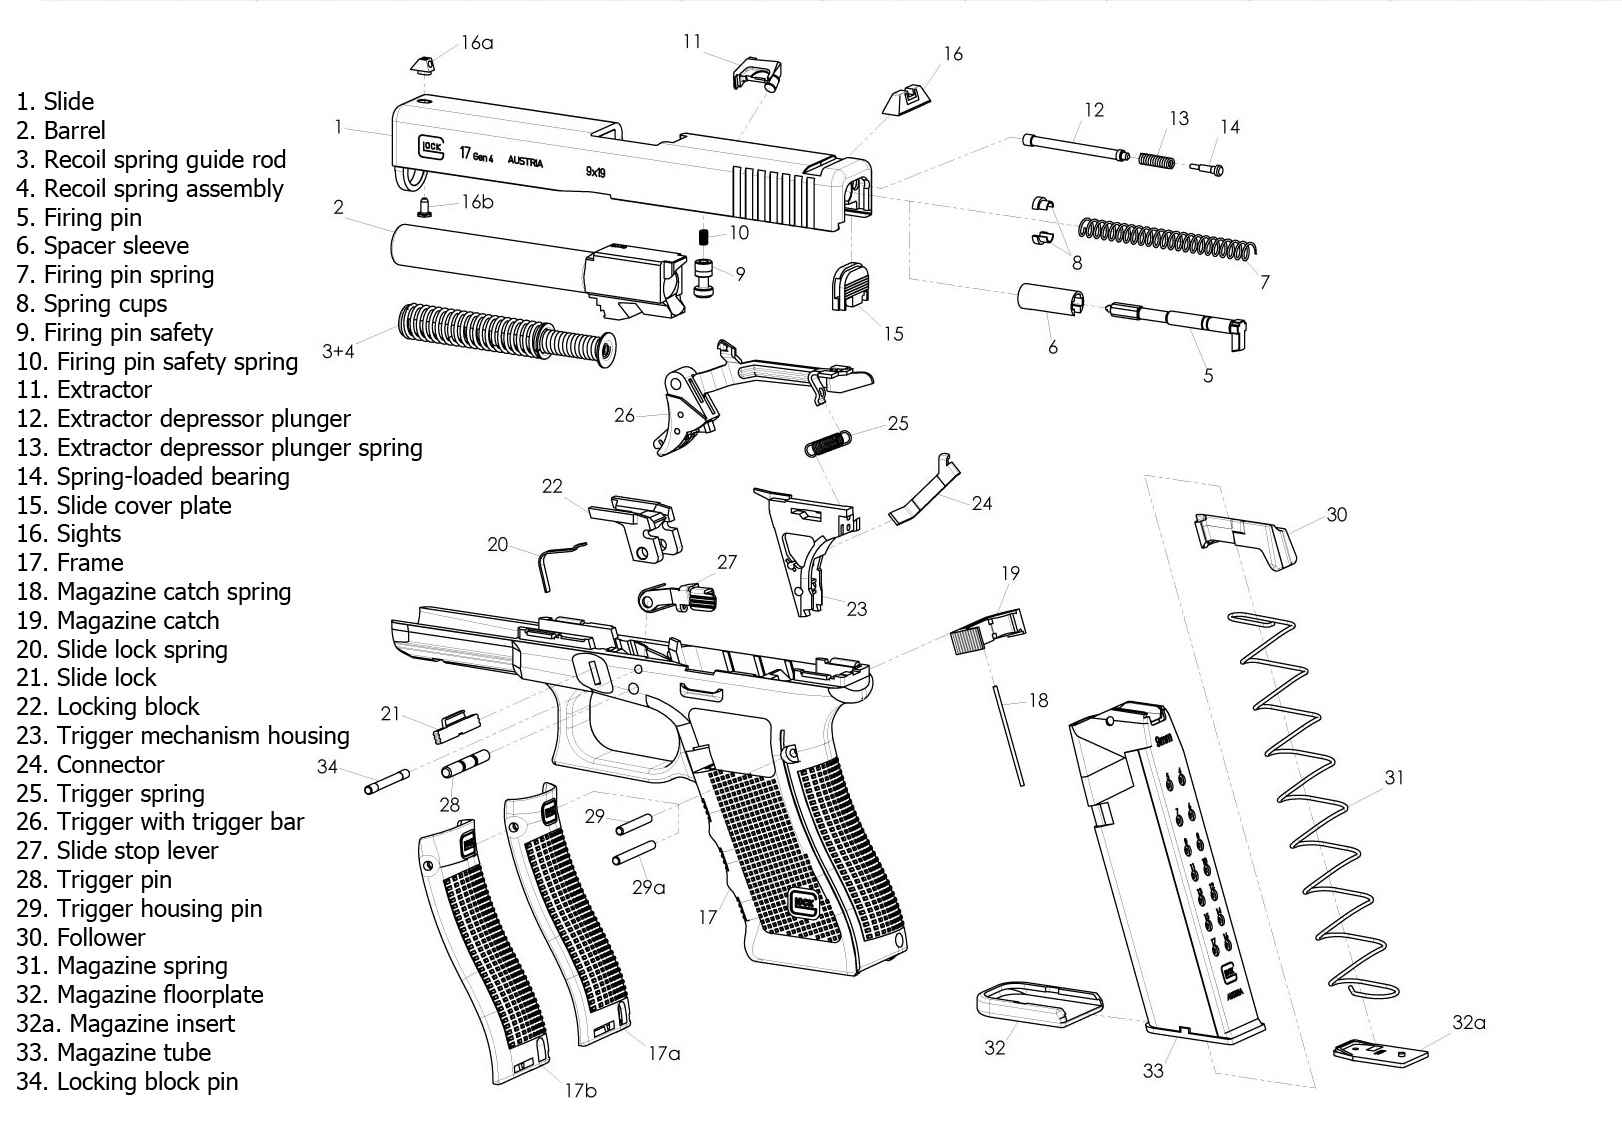 40 Glock Schematic Diagram Get Free Image About Wiring